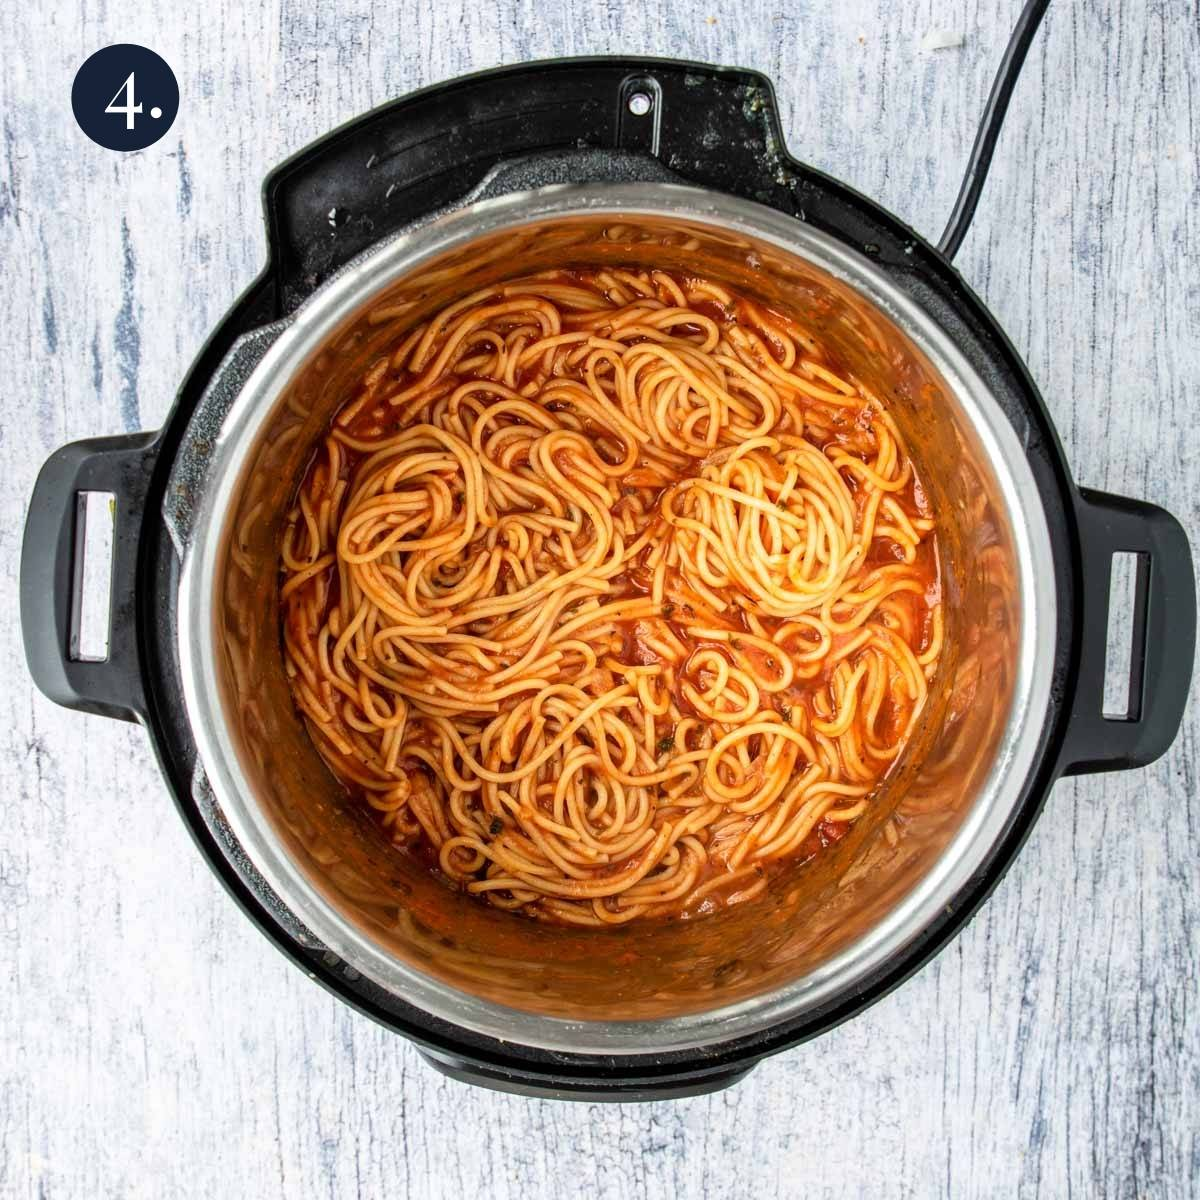 cooked spaghetti in the instant pot